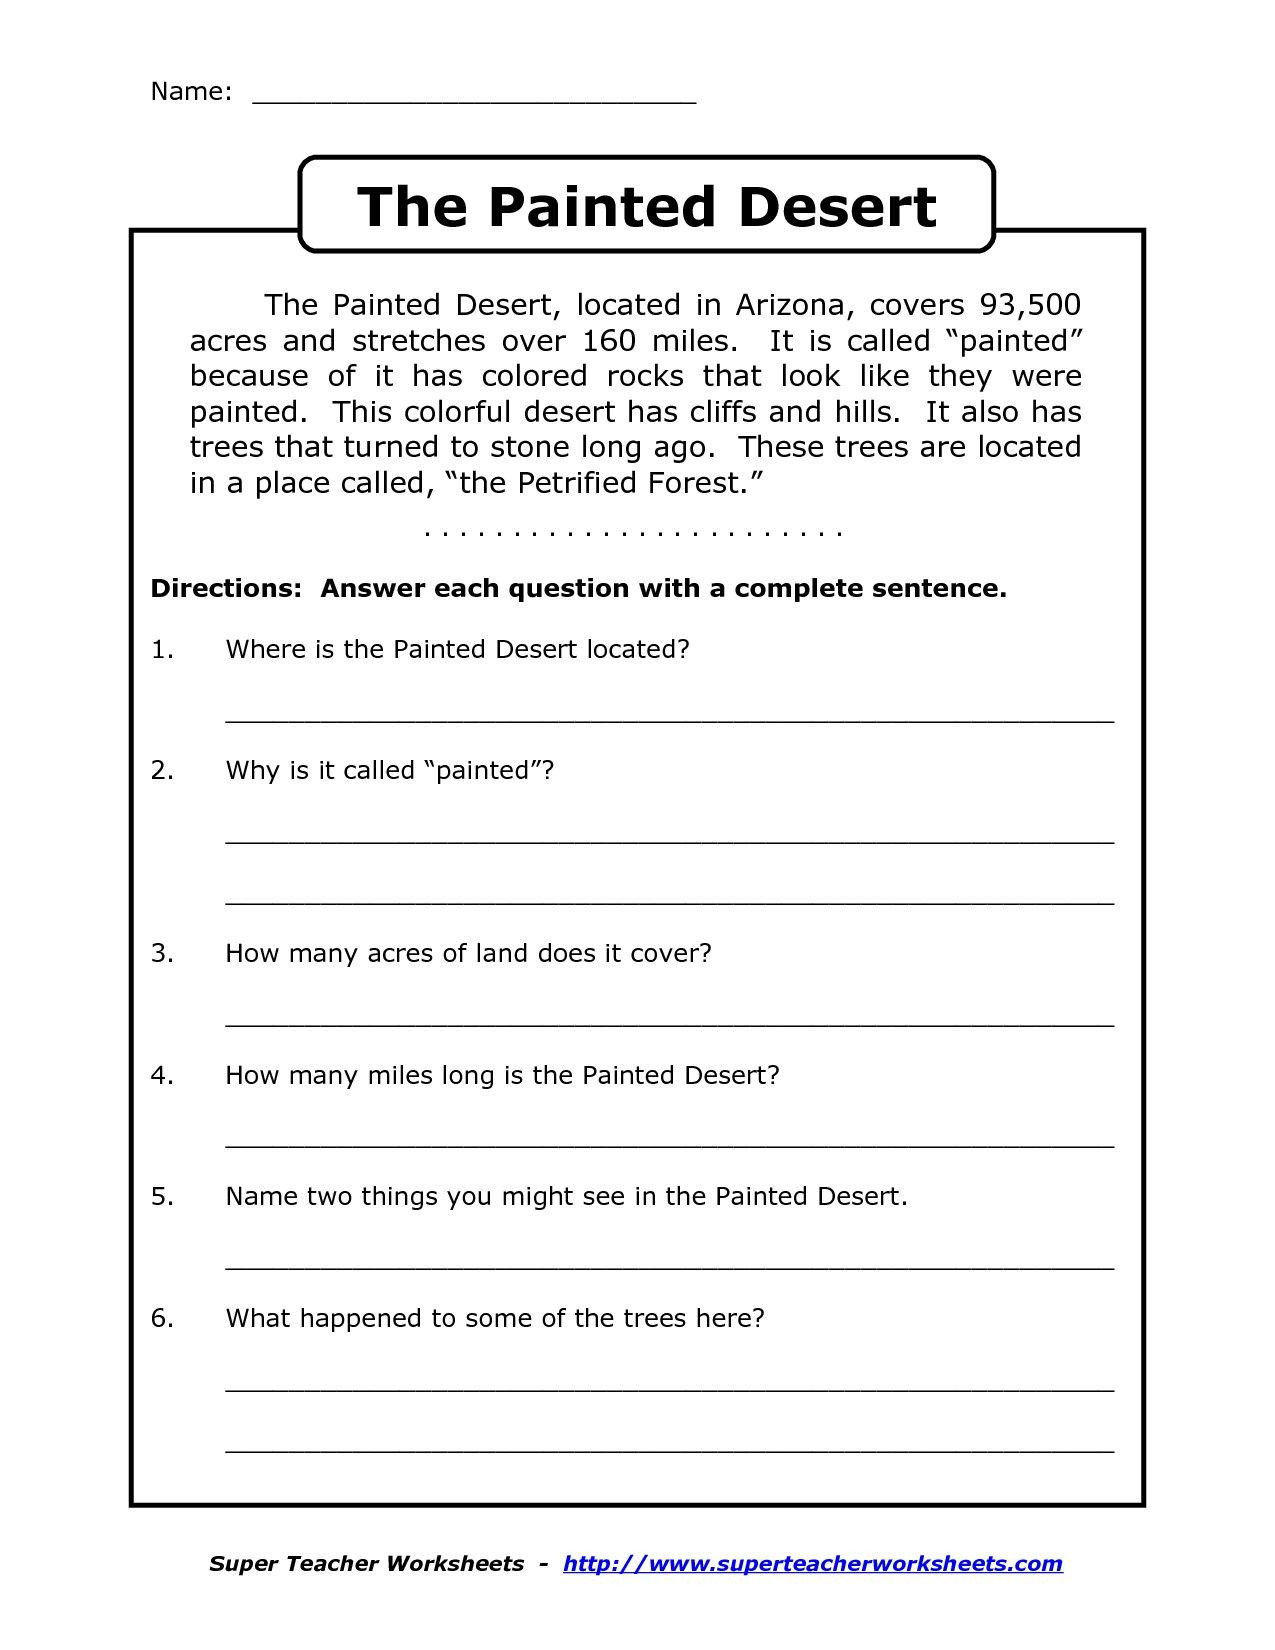 Sequence Worksheets for 3rd Grade Prehension Worksheet for 1st Grade Y2 P3 the Painted